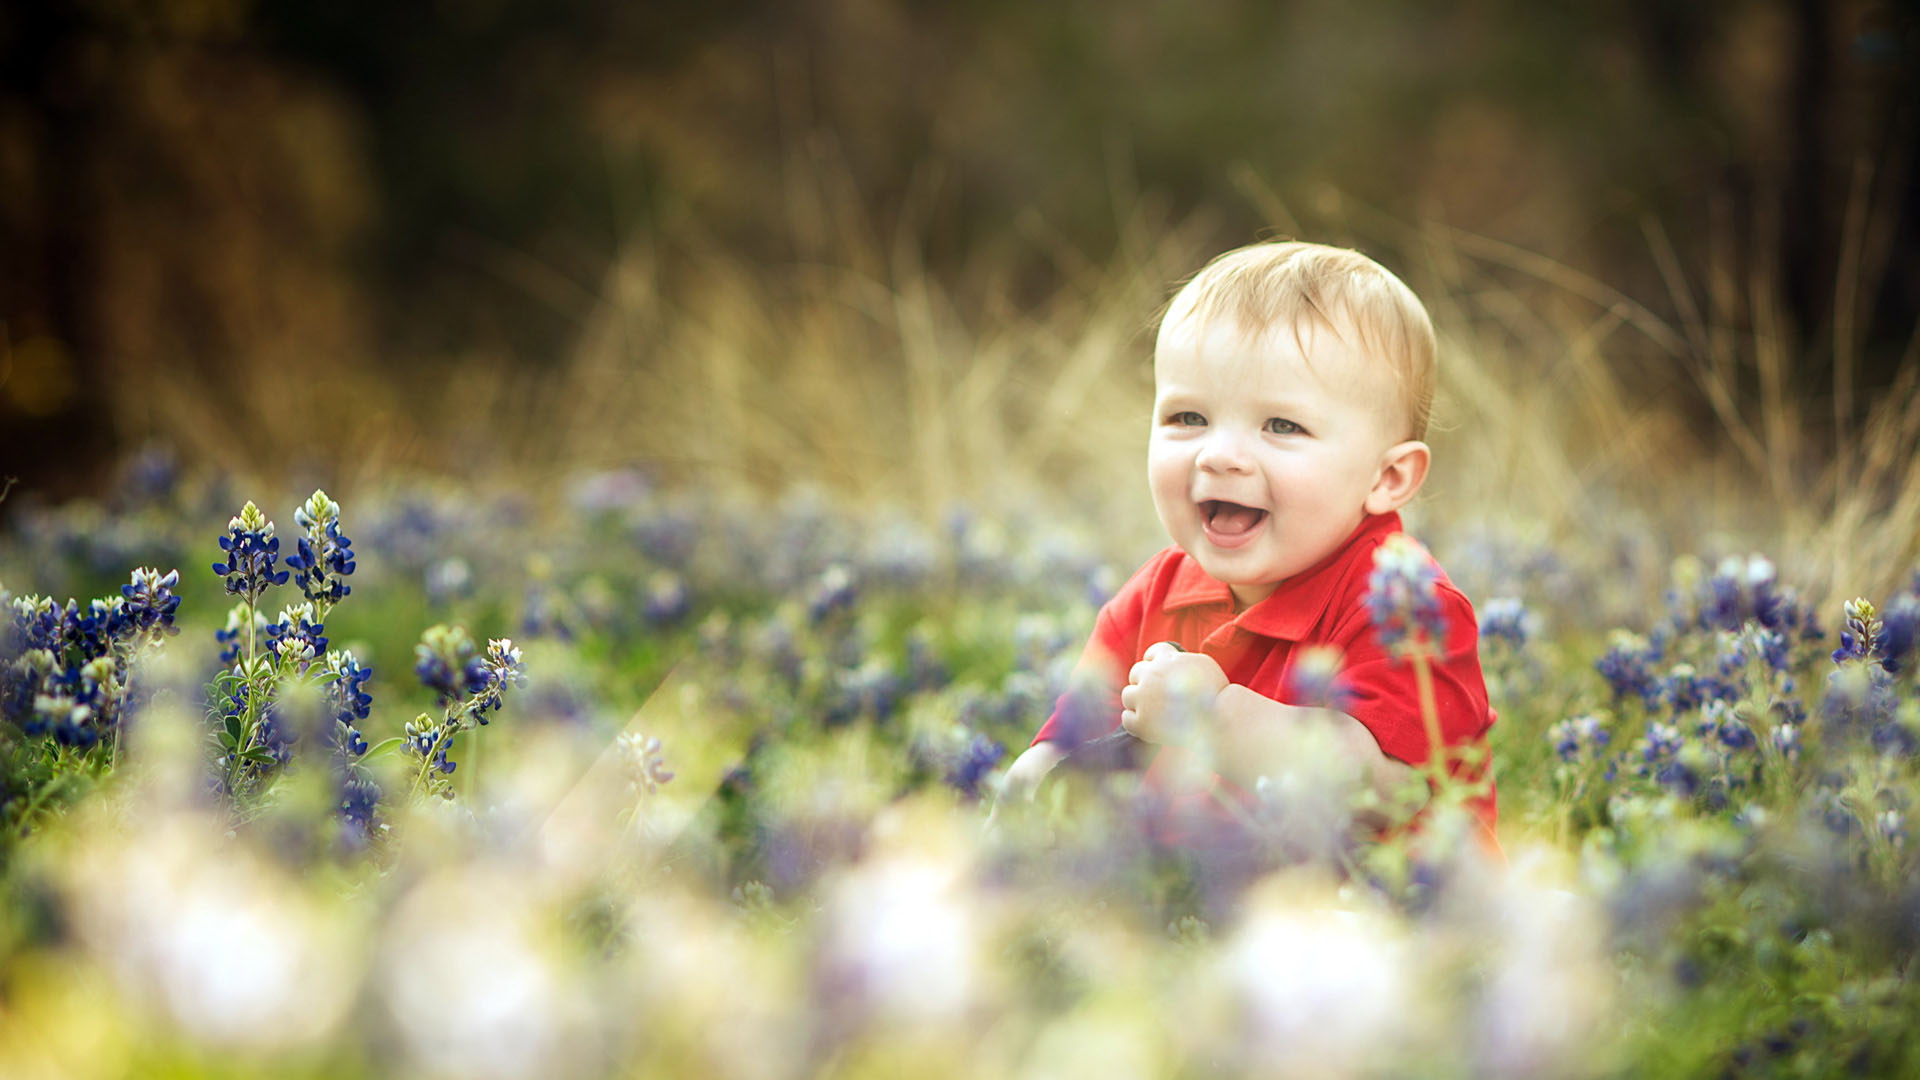 Cute Babies Wallpapers Free Download: 45 Small And Cute Baby Wallpaper Download For Free